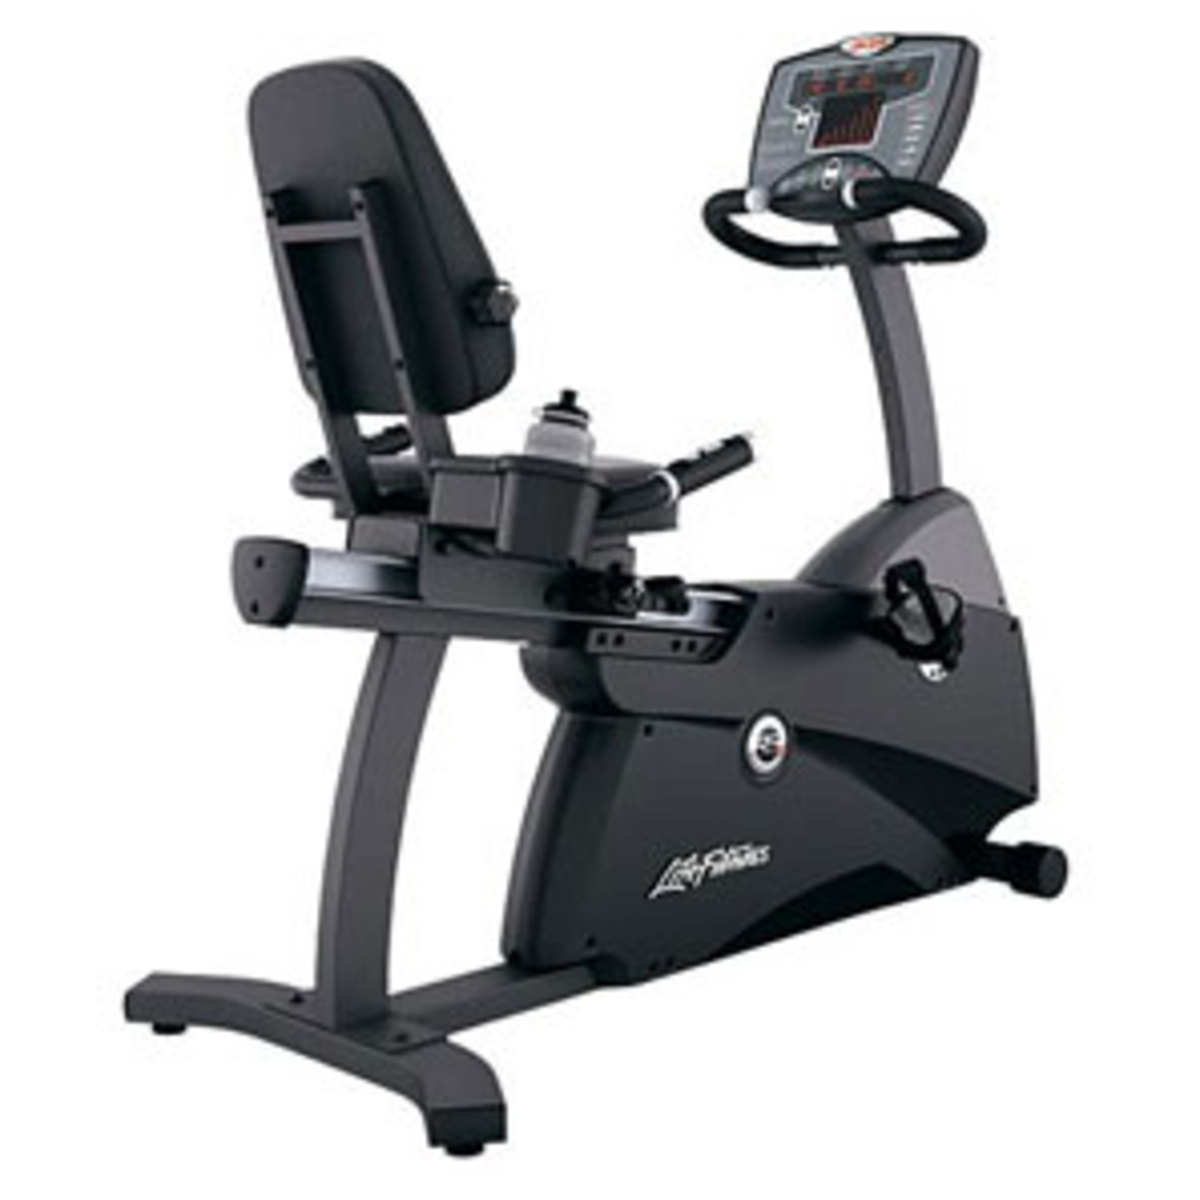 Best Bikes For Seniors The recumbent exercise bike